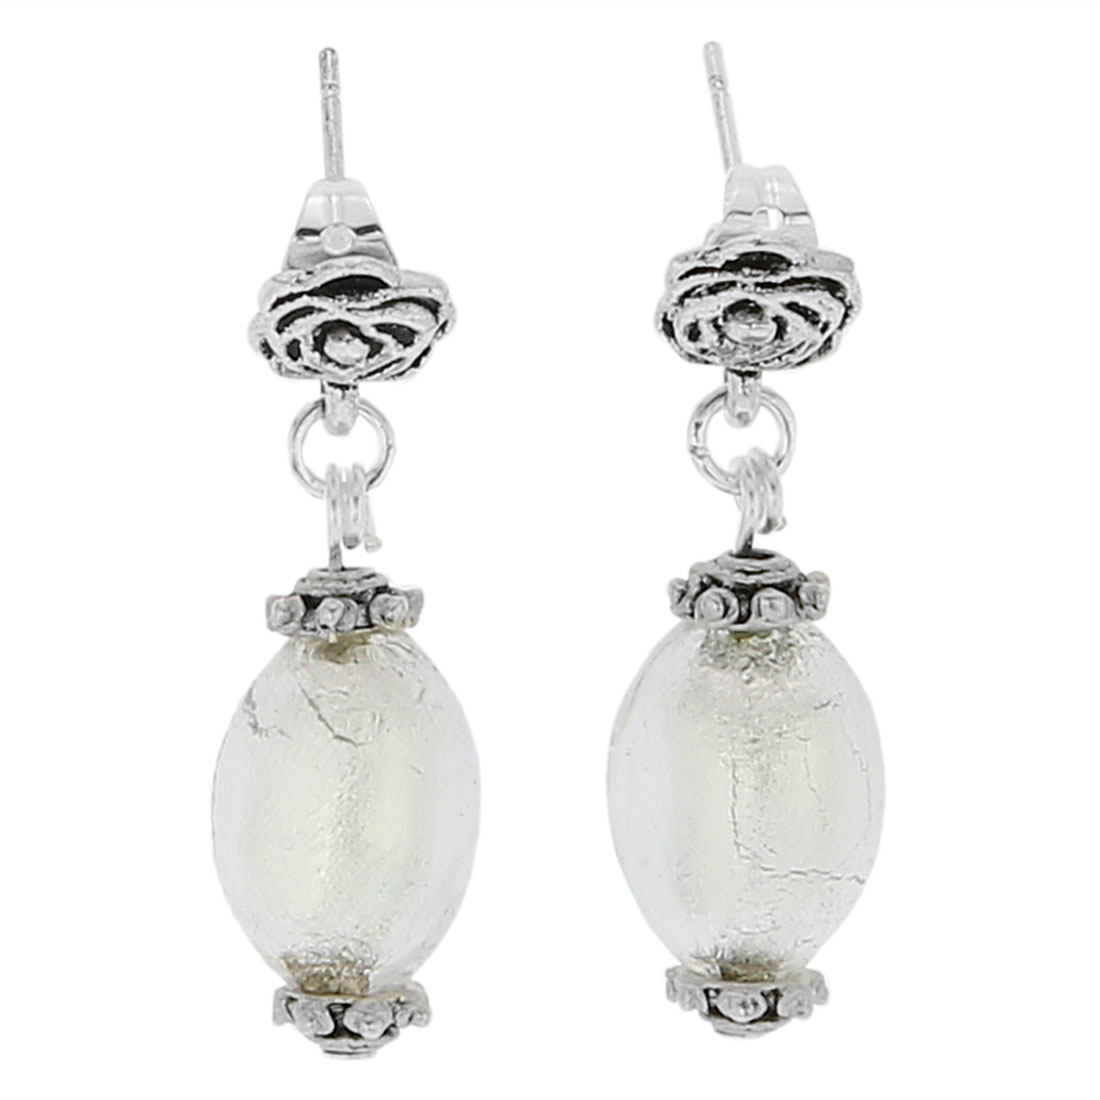 Antico Tesoro Olives Earrings - Silver